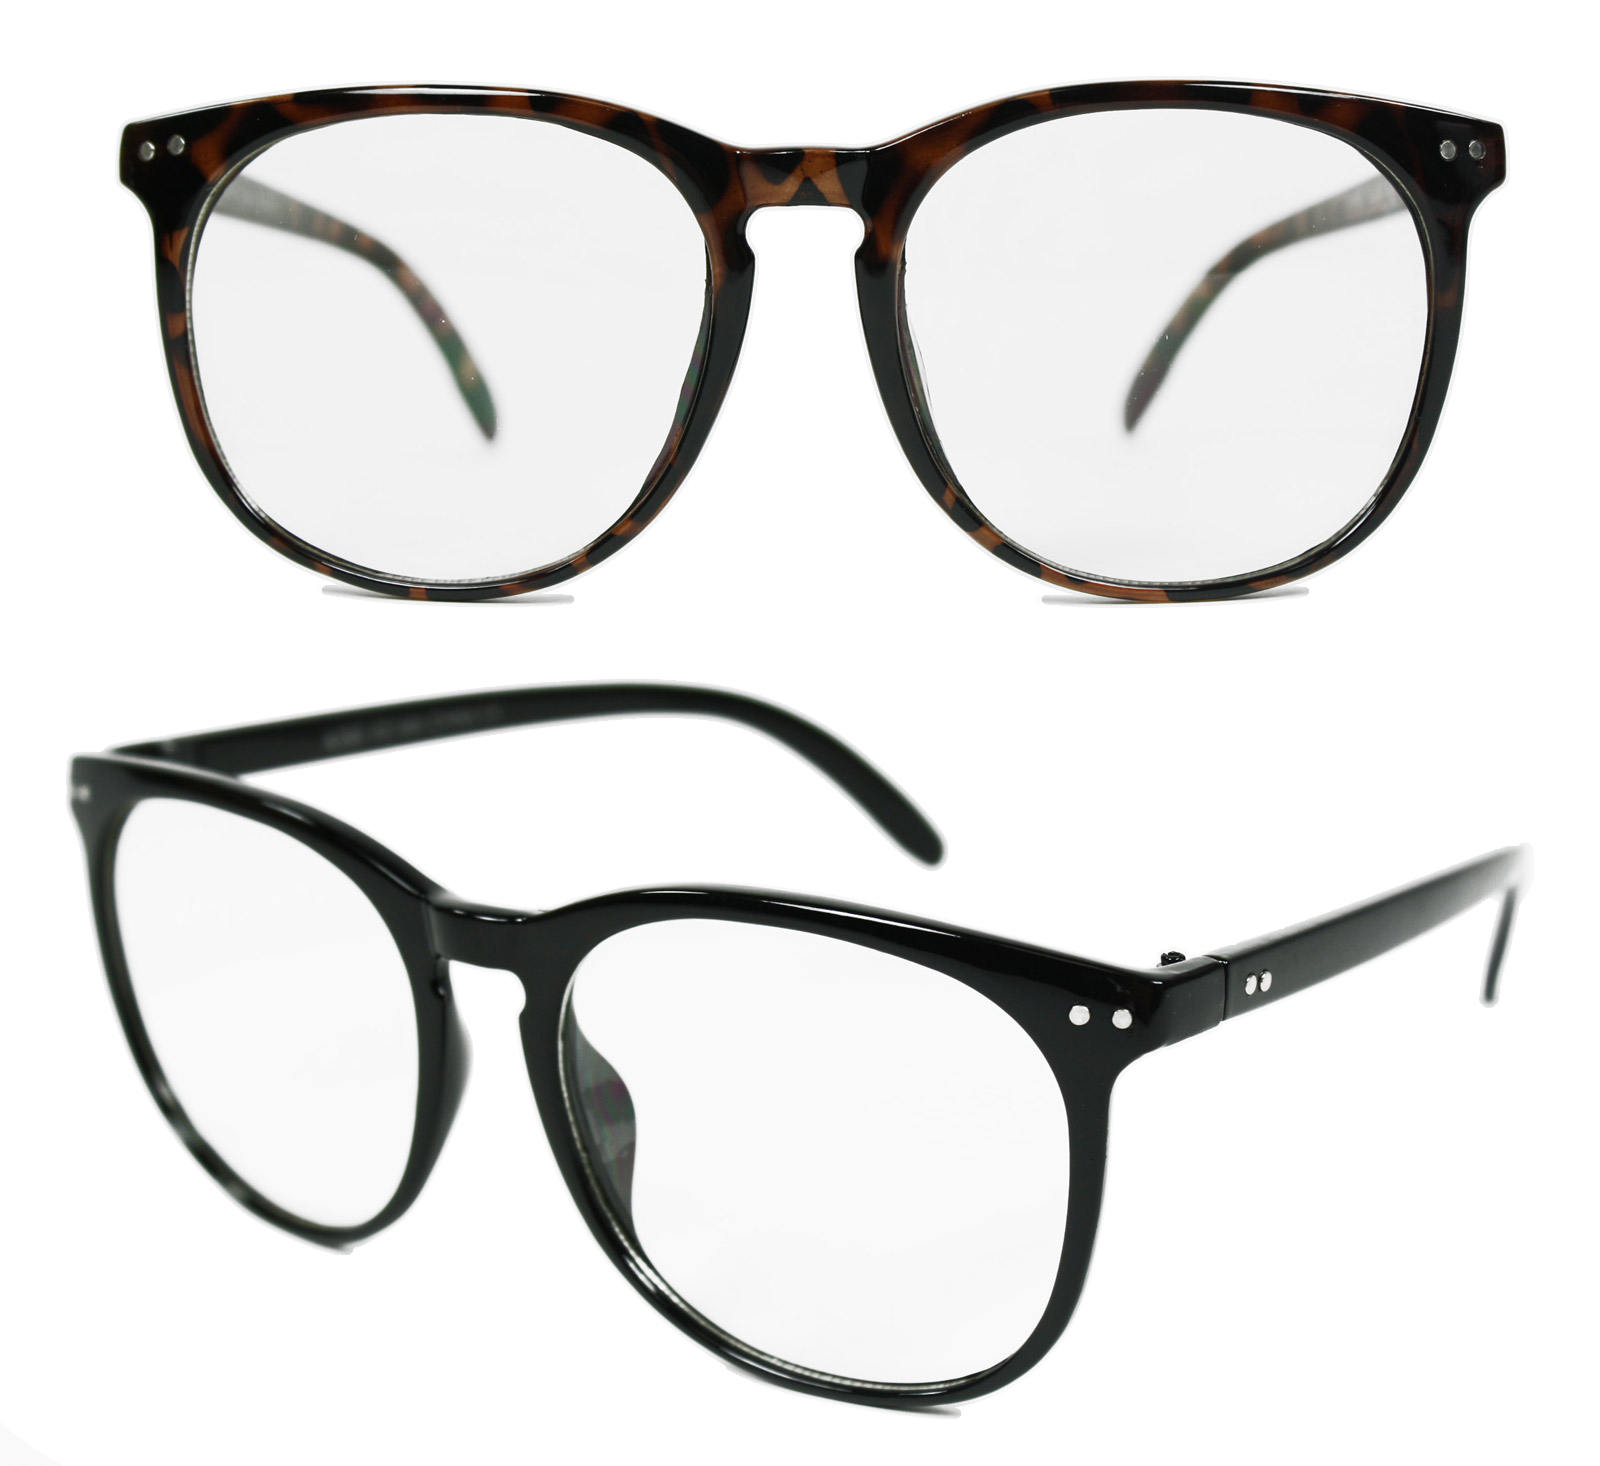 Clark Kent Disguise Superman Nerd Geek Emo Clear Lenses